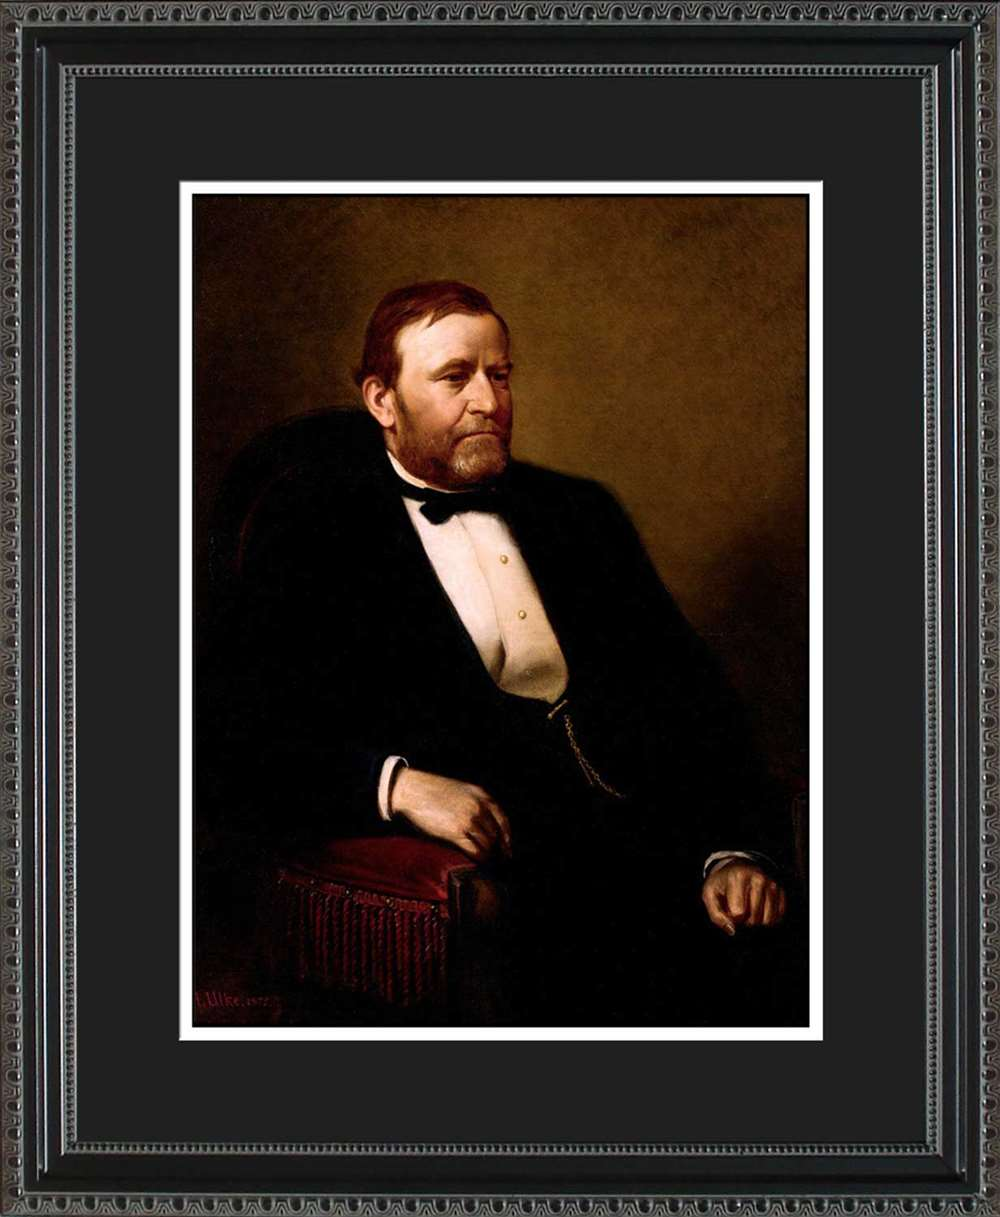 Ulysses S. Grant Official President Portrait, 16x20